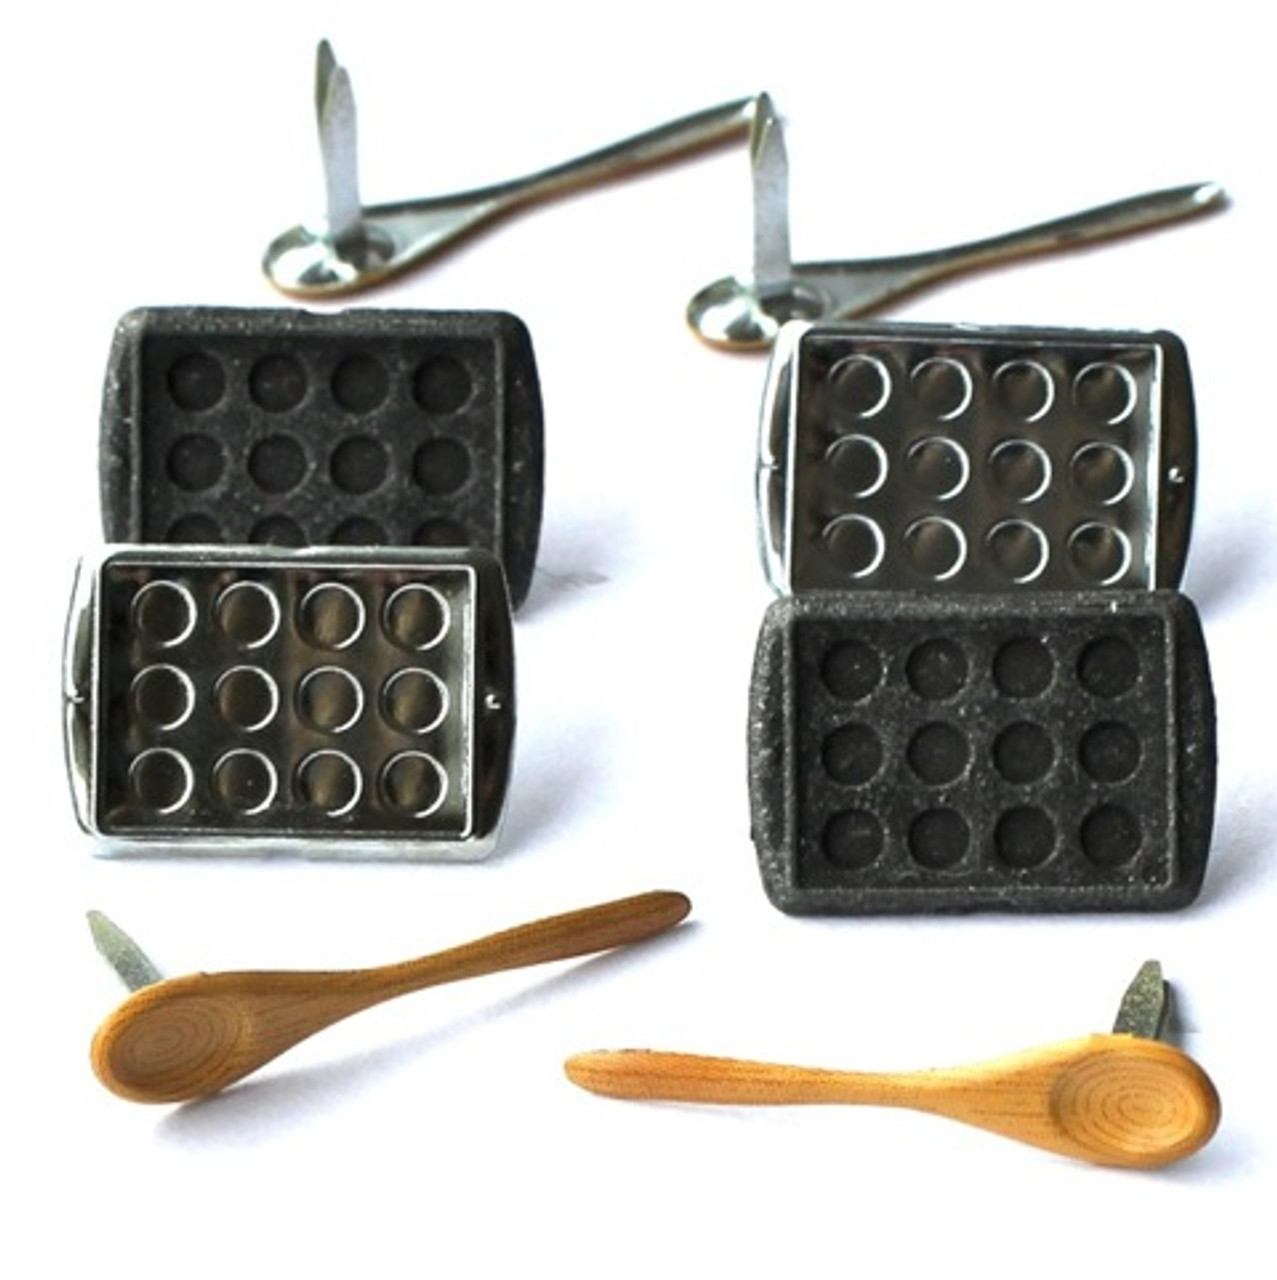 Baking Cookie Sheet & Wooden Spoon Brads by Eyelet Outlet - Pkg. of 12